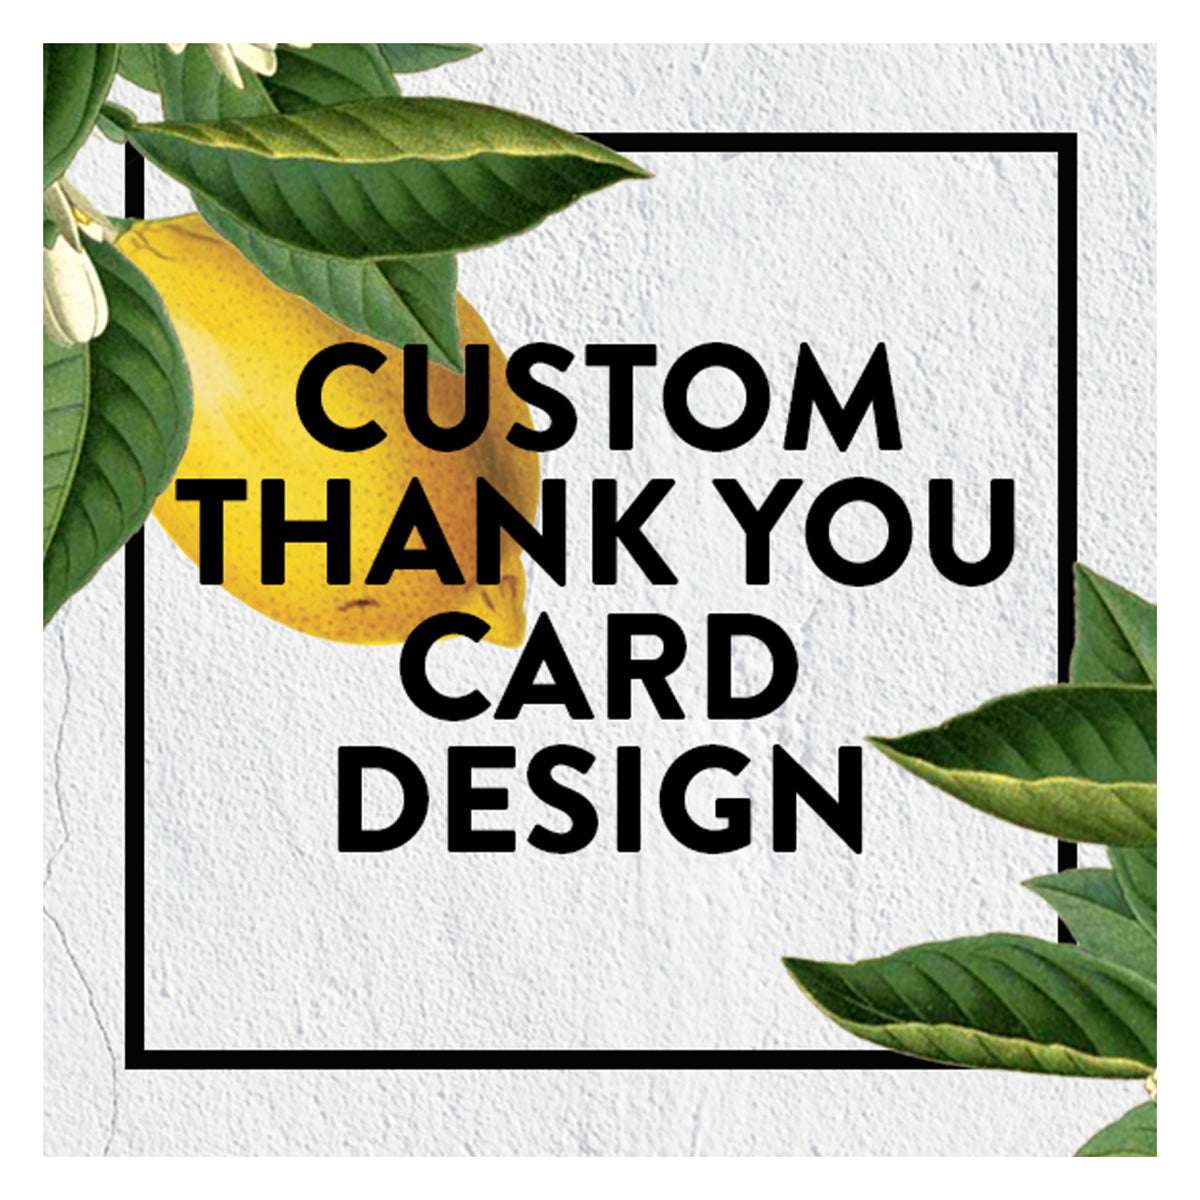 Custom Thank You Card Design